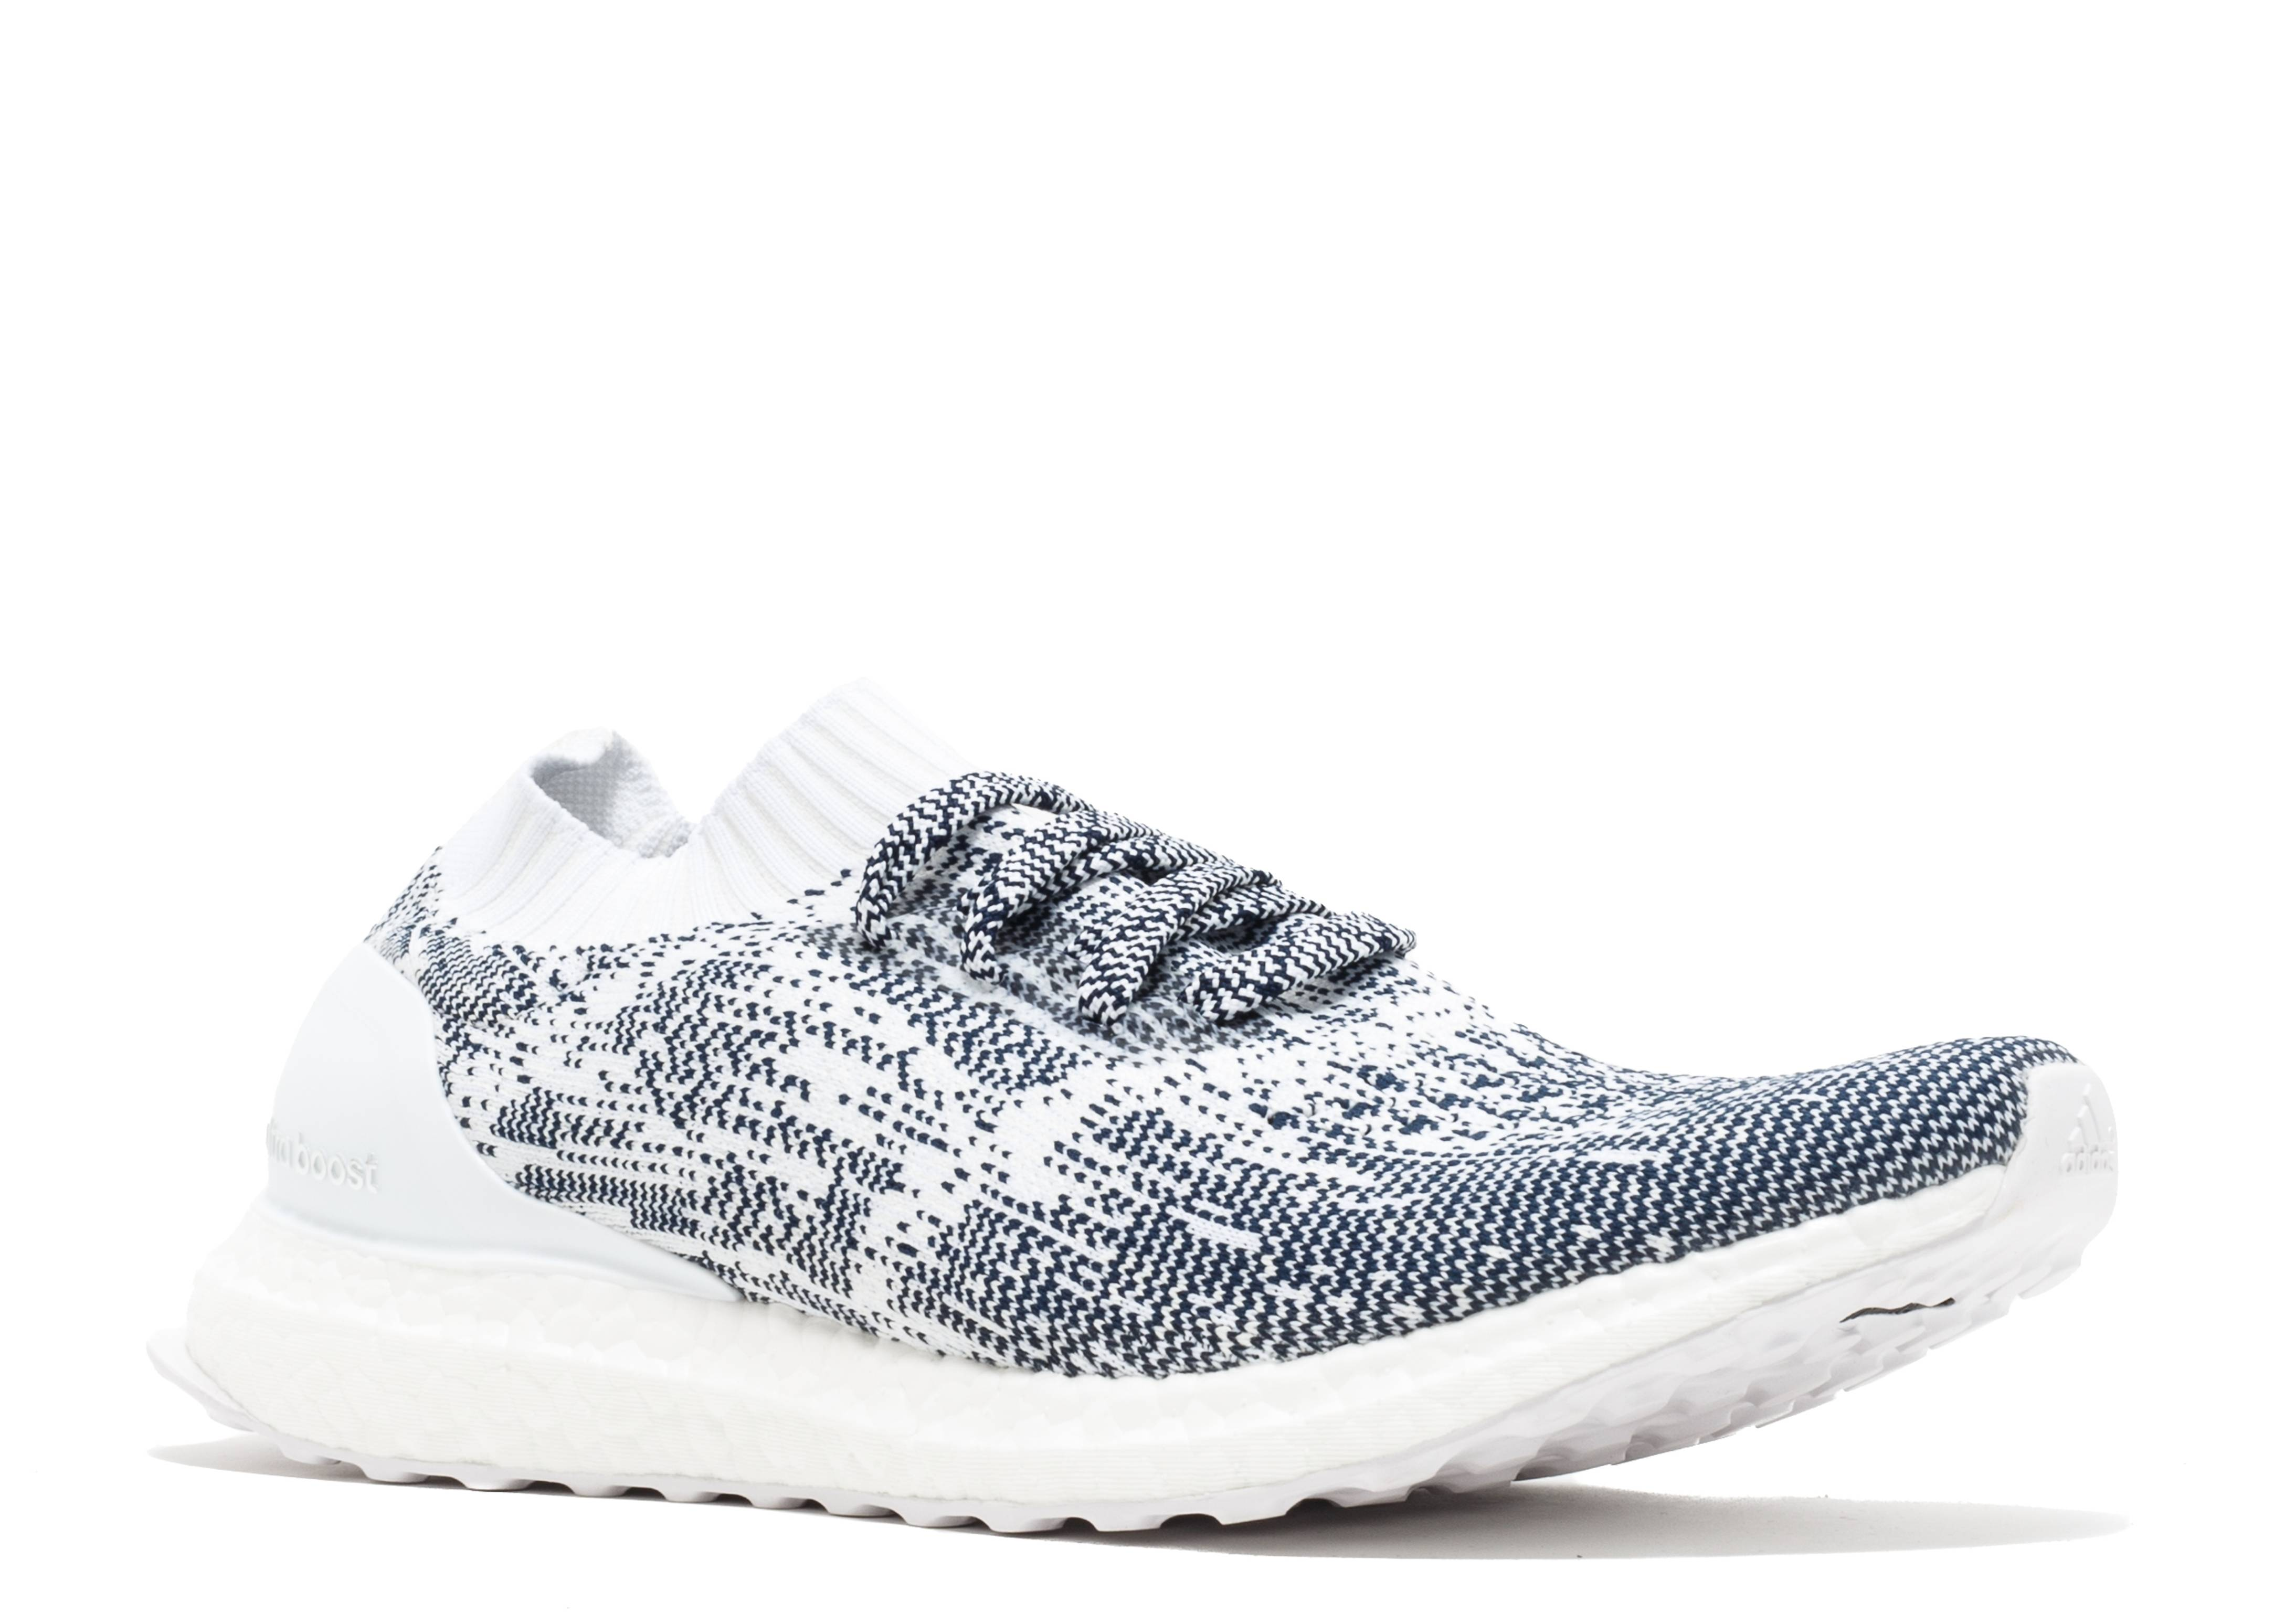 7b262022be92f Adidas Ultra Boost Uncaged Non Dyed White Oreo - 1